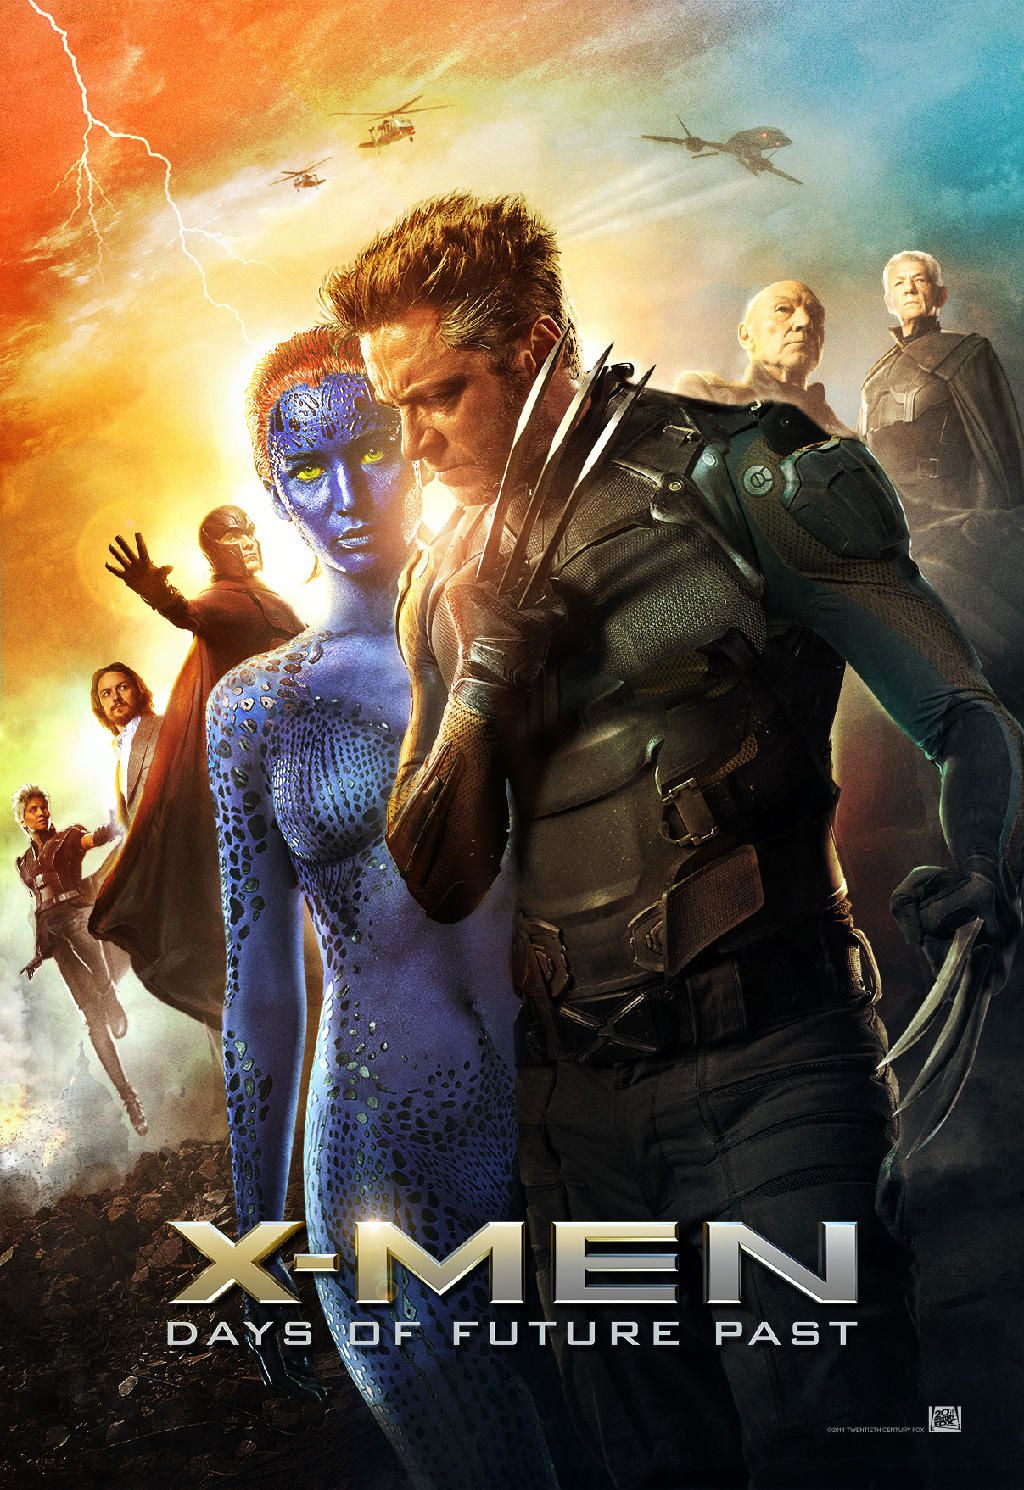 [critique] X-Men : Days of Future Past